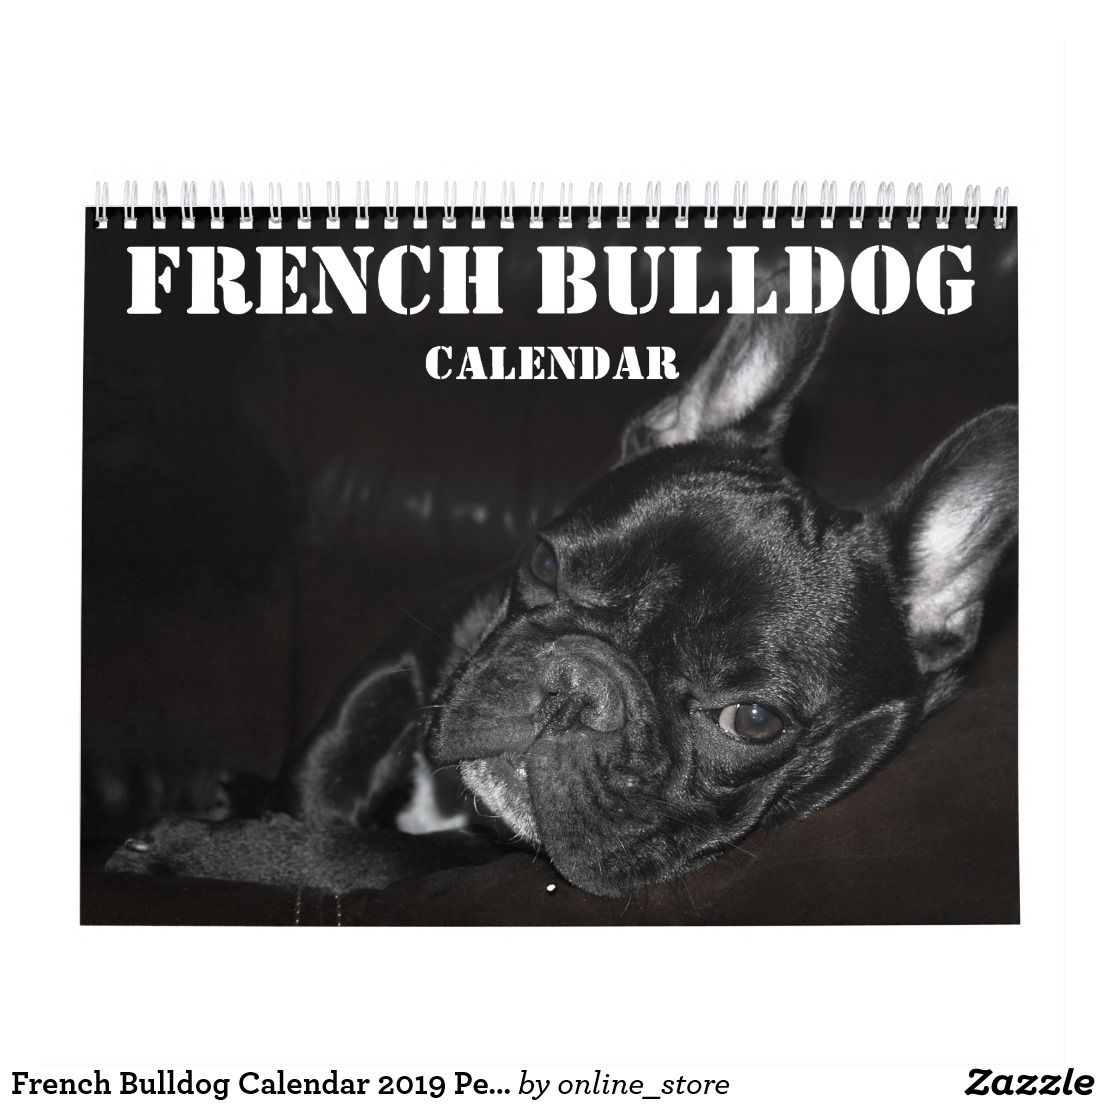 French Bulldog Calendar 2020 Personalized Photos Zazzle Com